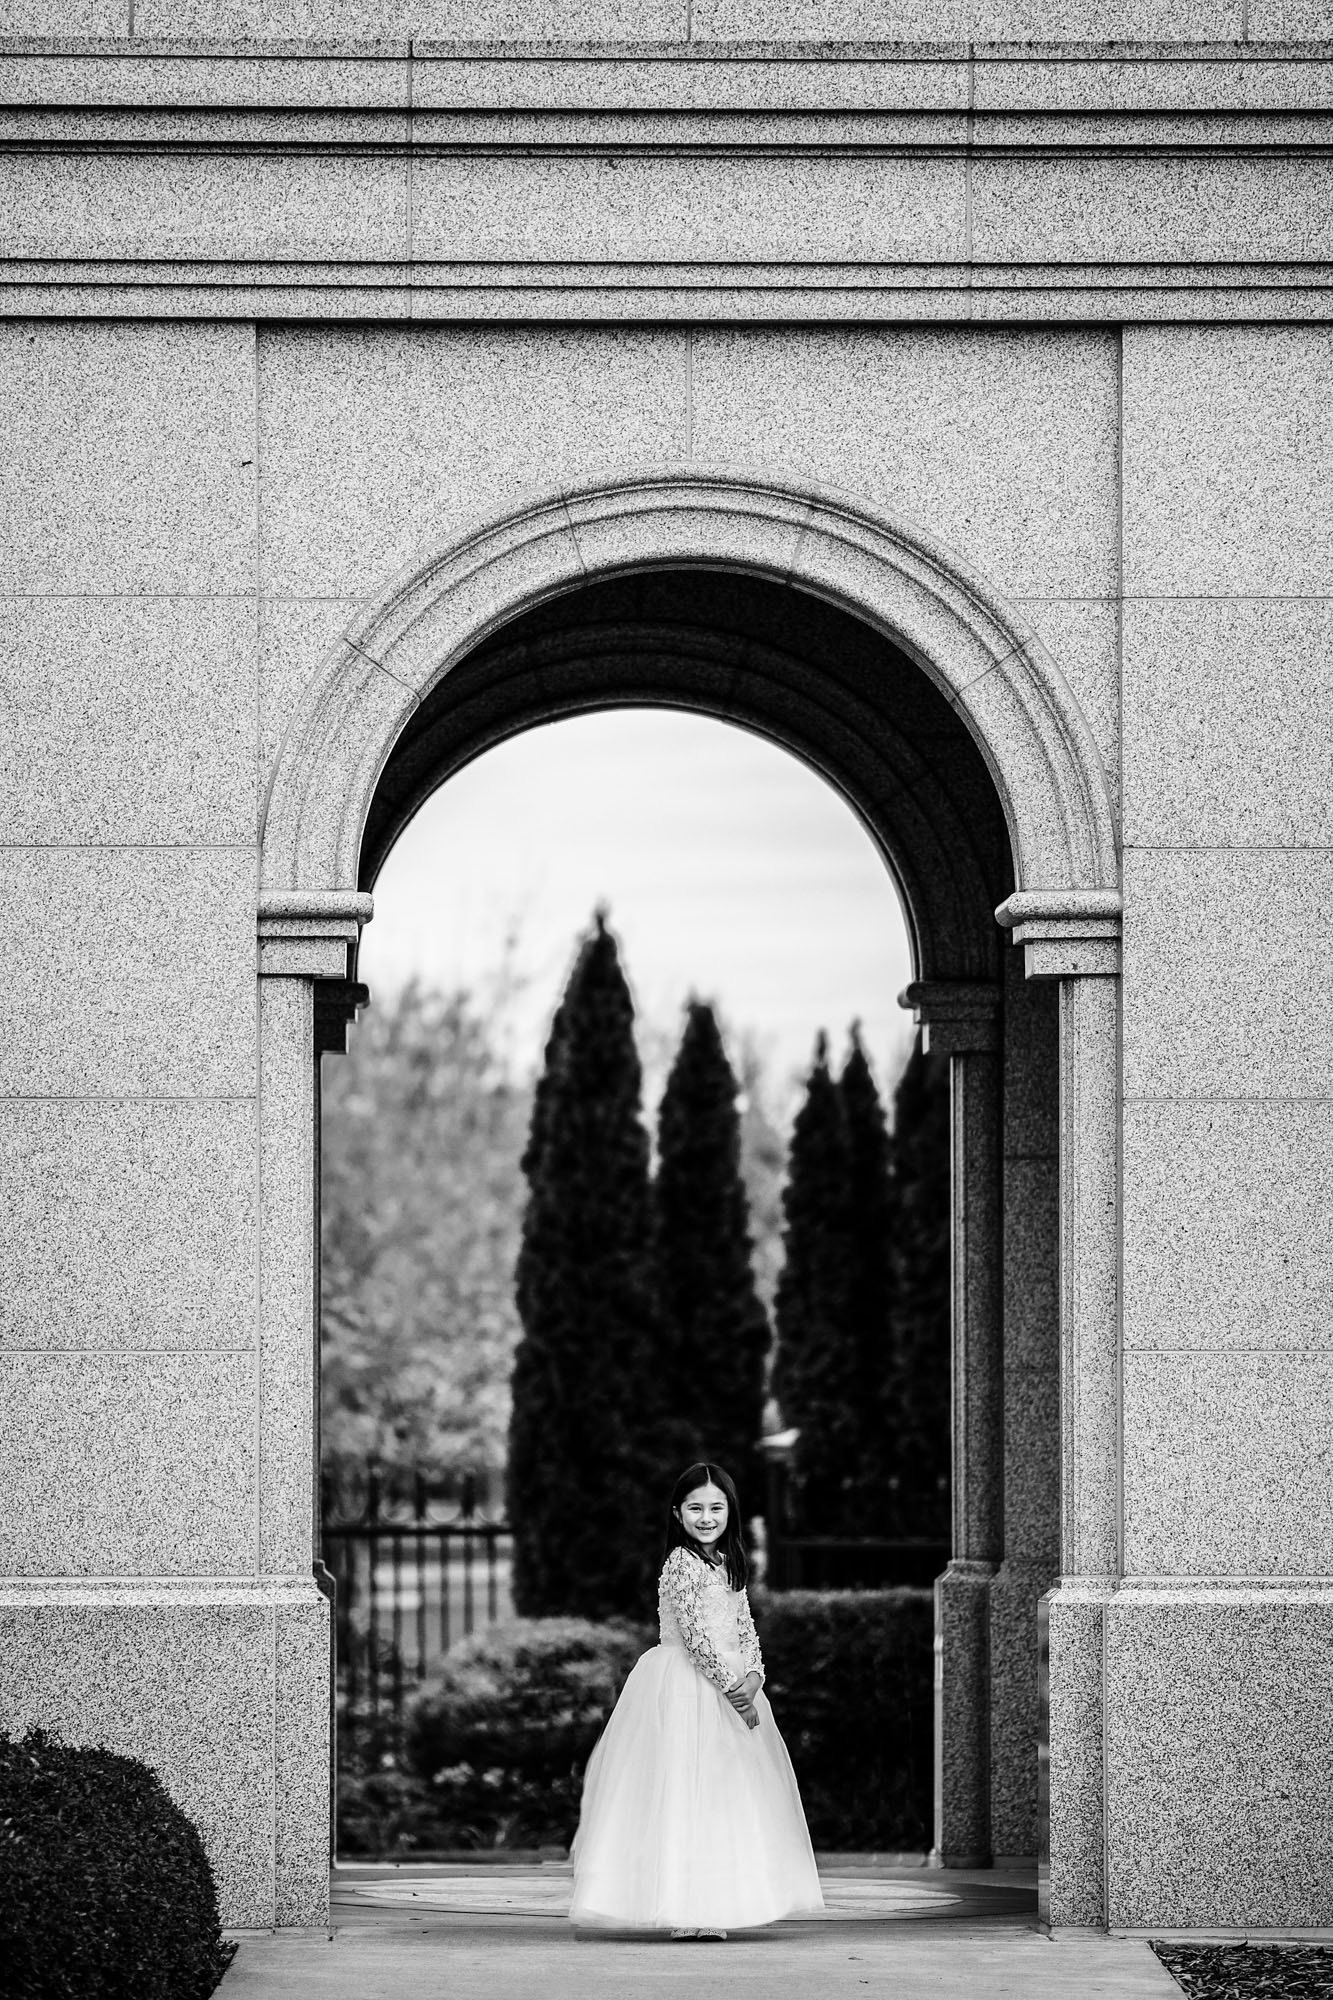 A girl stands under an arch of a temple of The Church of Jesus Christ of Latter-daySatins in Folsom, California during a photo session before she is baptized with Amy Wright Photography.